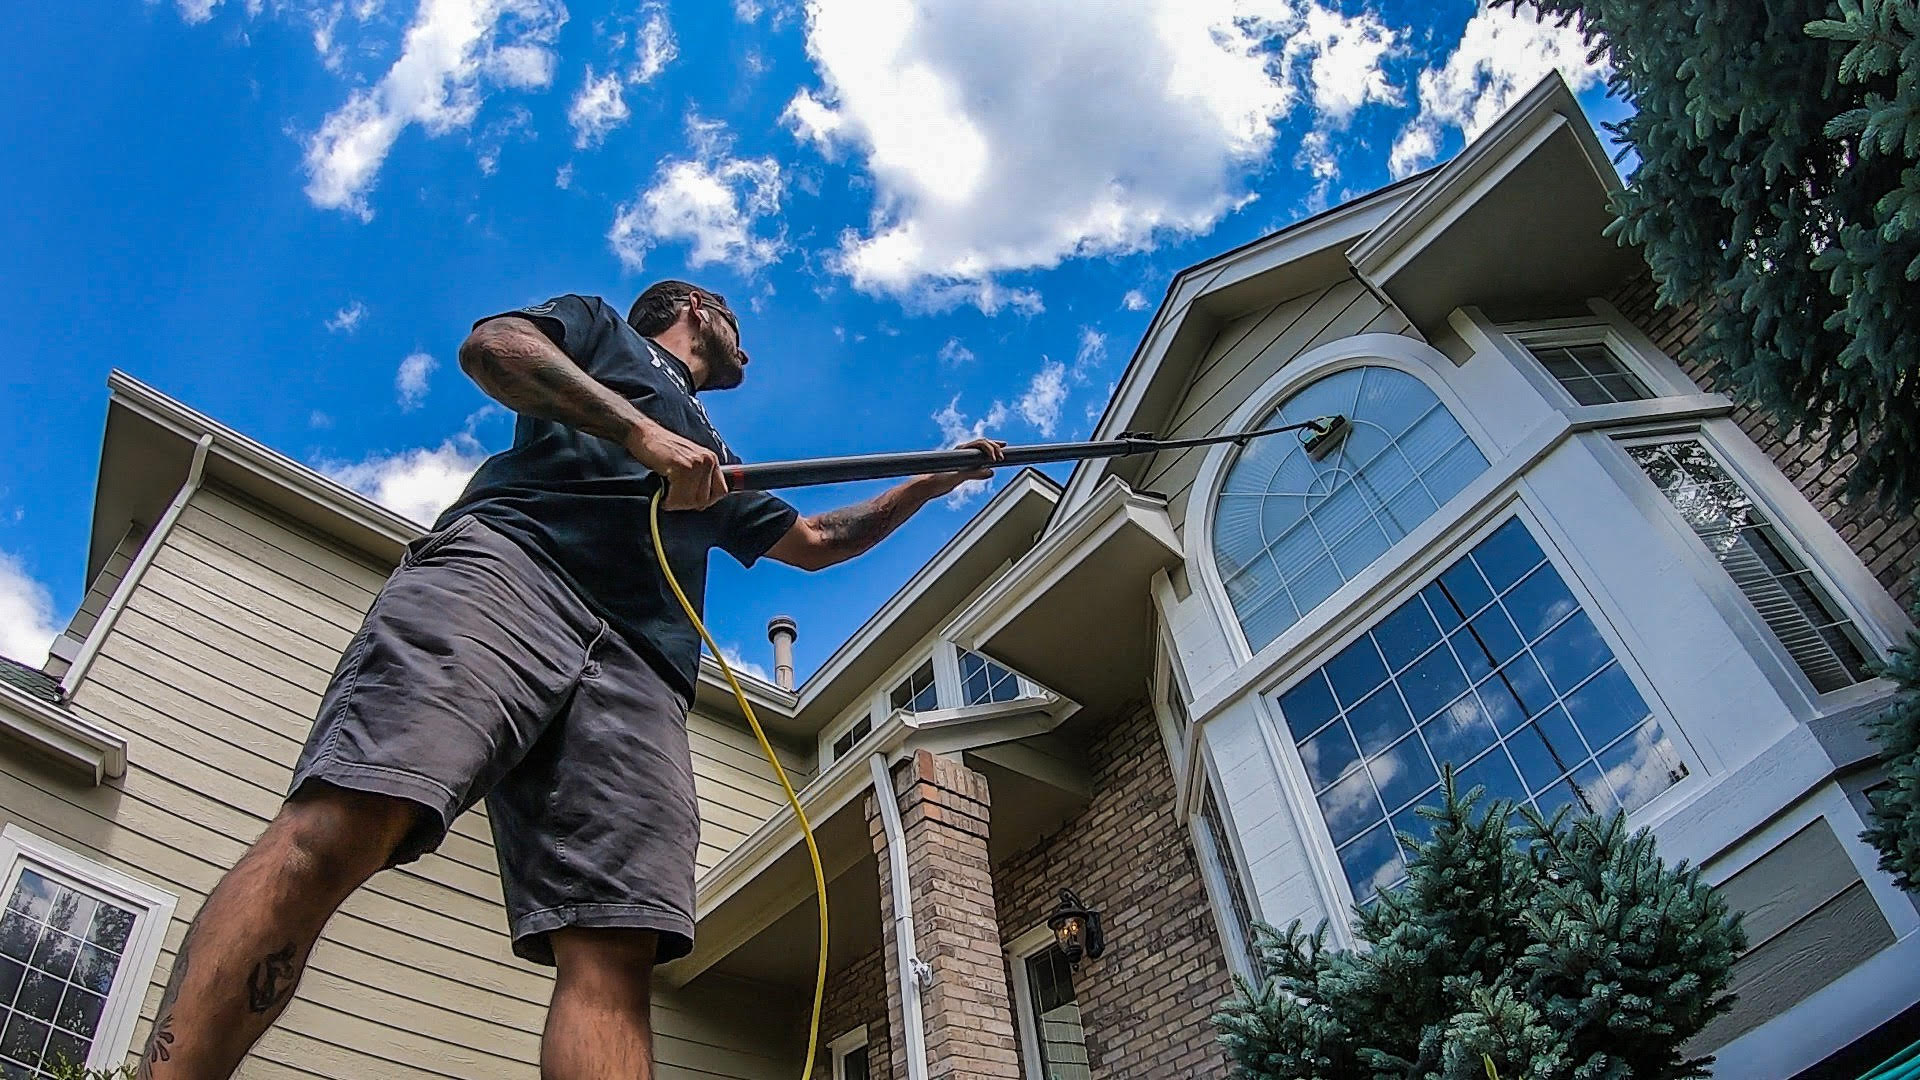 That means you should get high-quality window cleaning products. You need to have a great cleaning strategy and plan for your buildings. You should and must approach cleaning holistically.